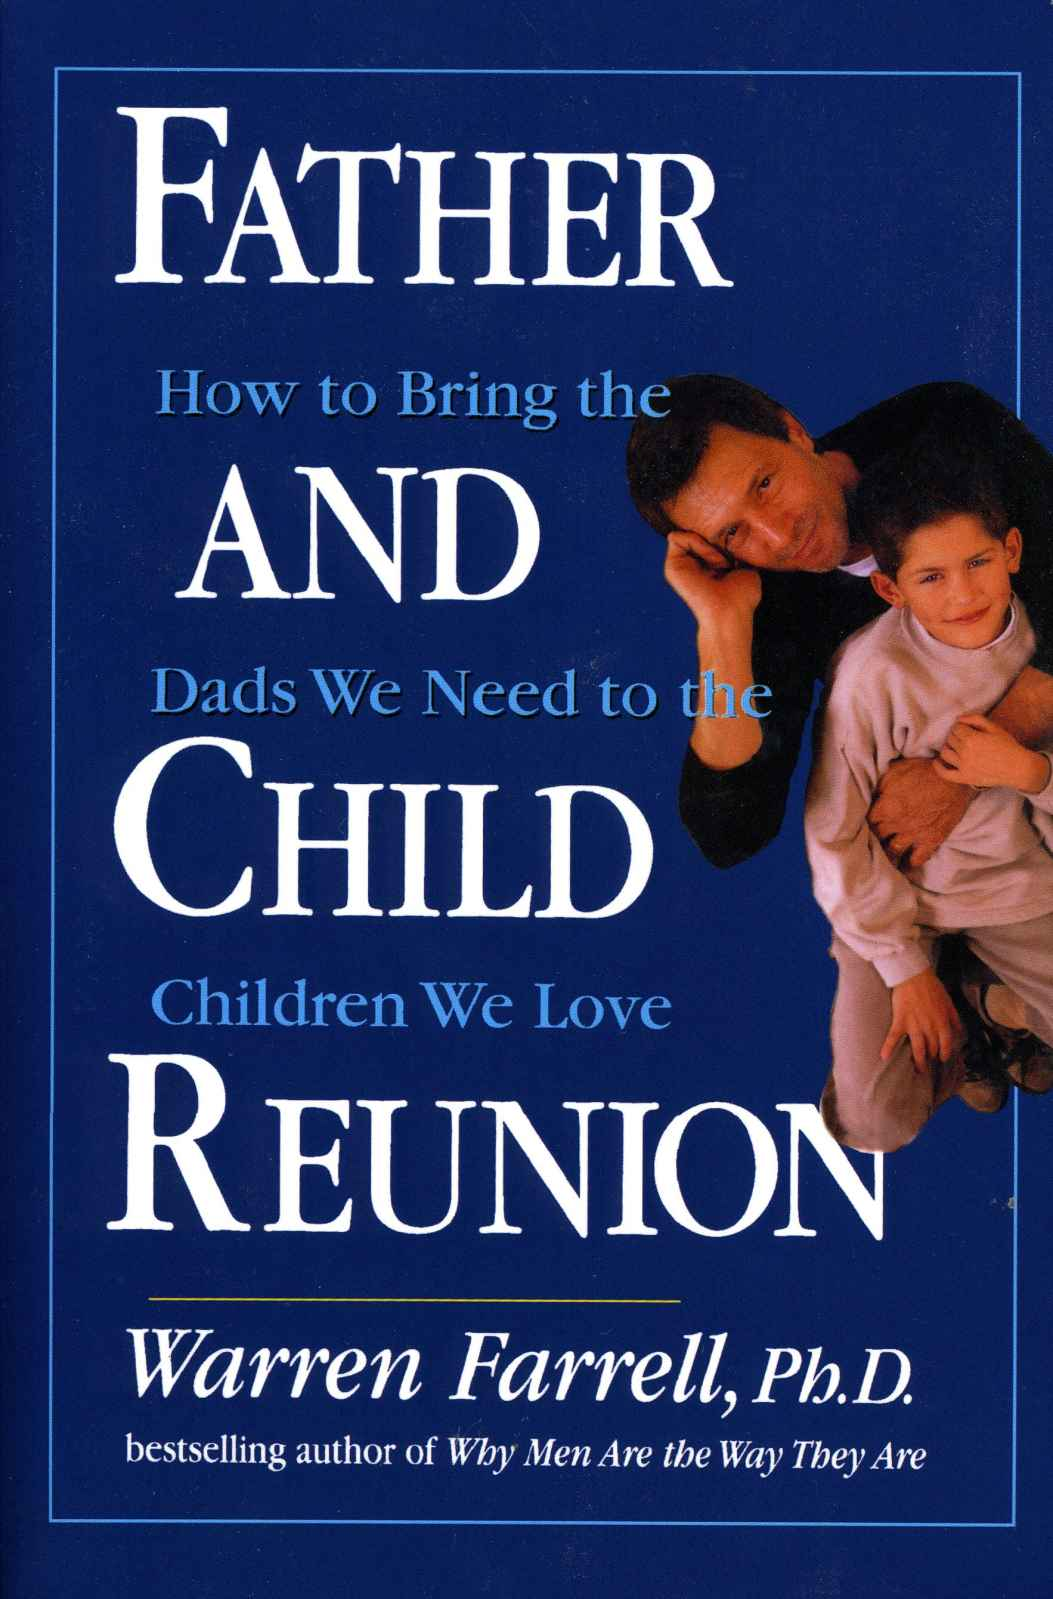 Father and Child Reunion by Warren Farrell - Love IDEAS Summit - Invisible Disabilities Association